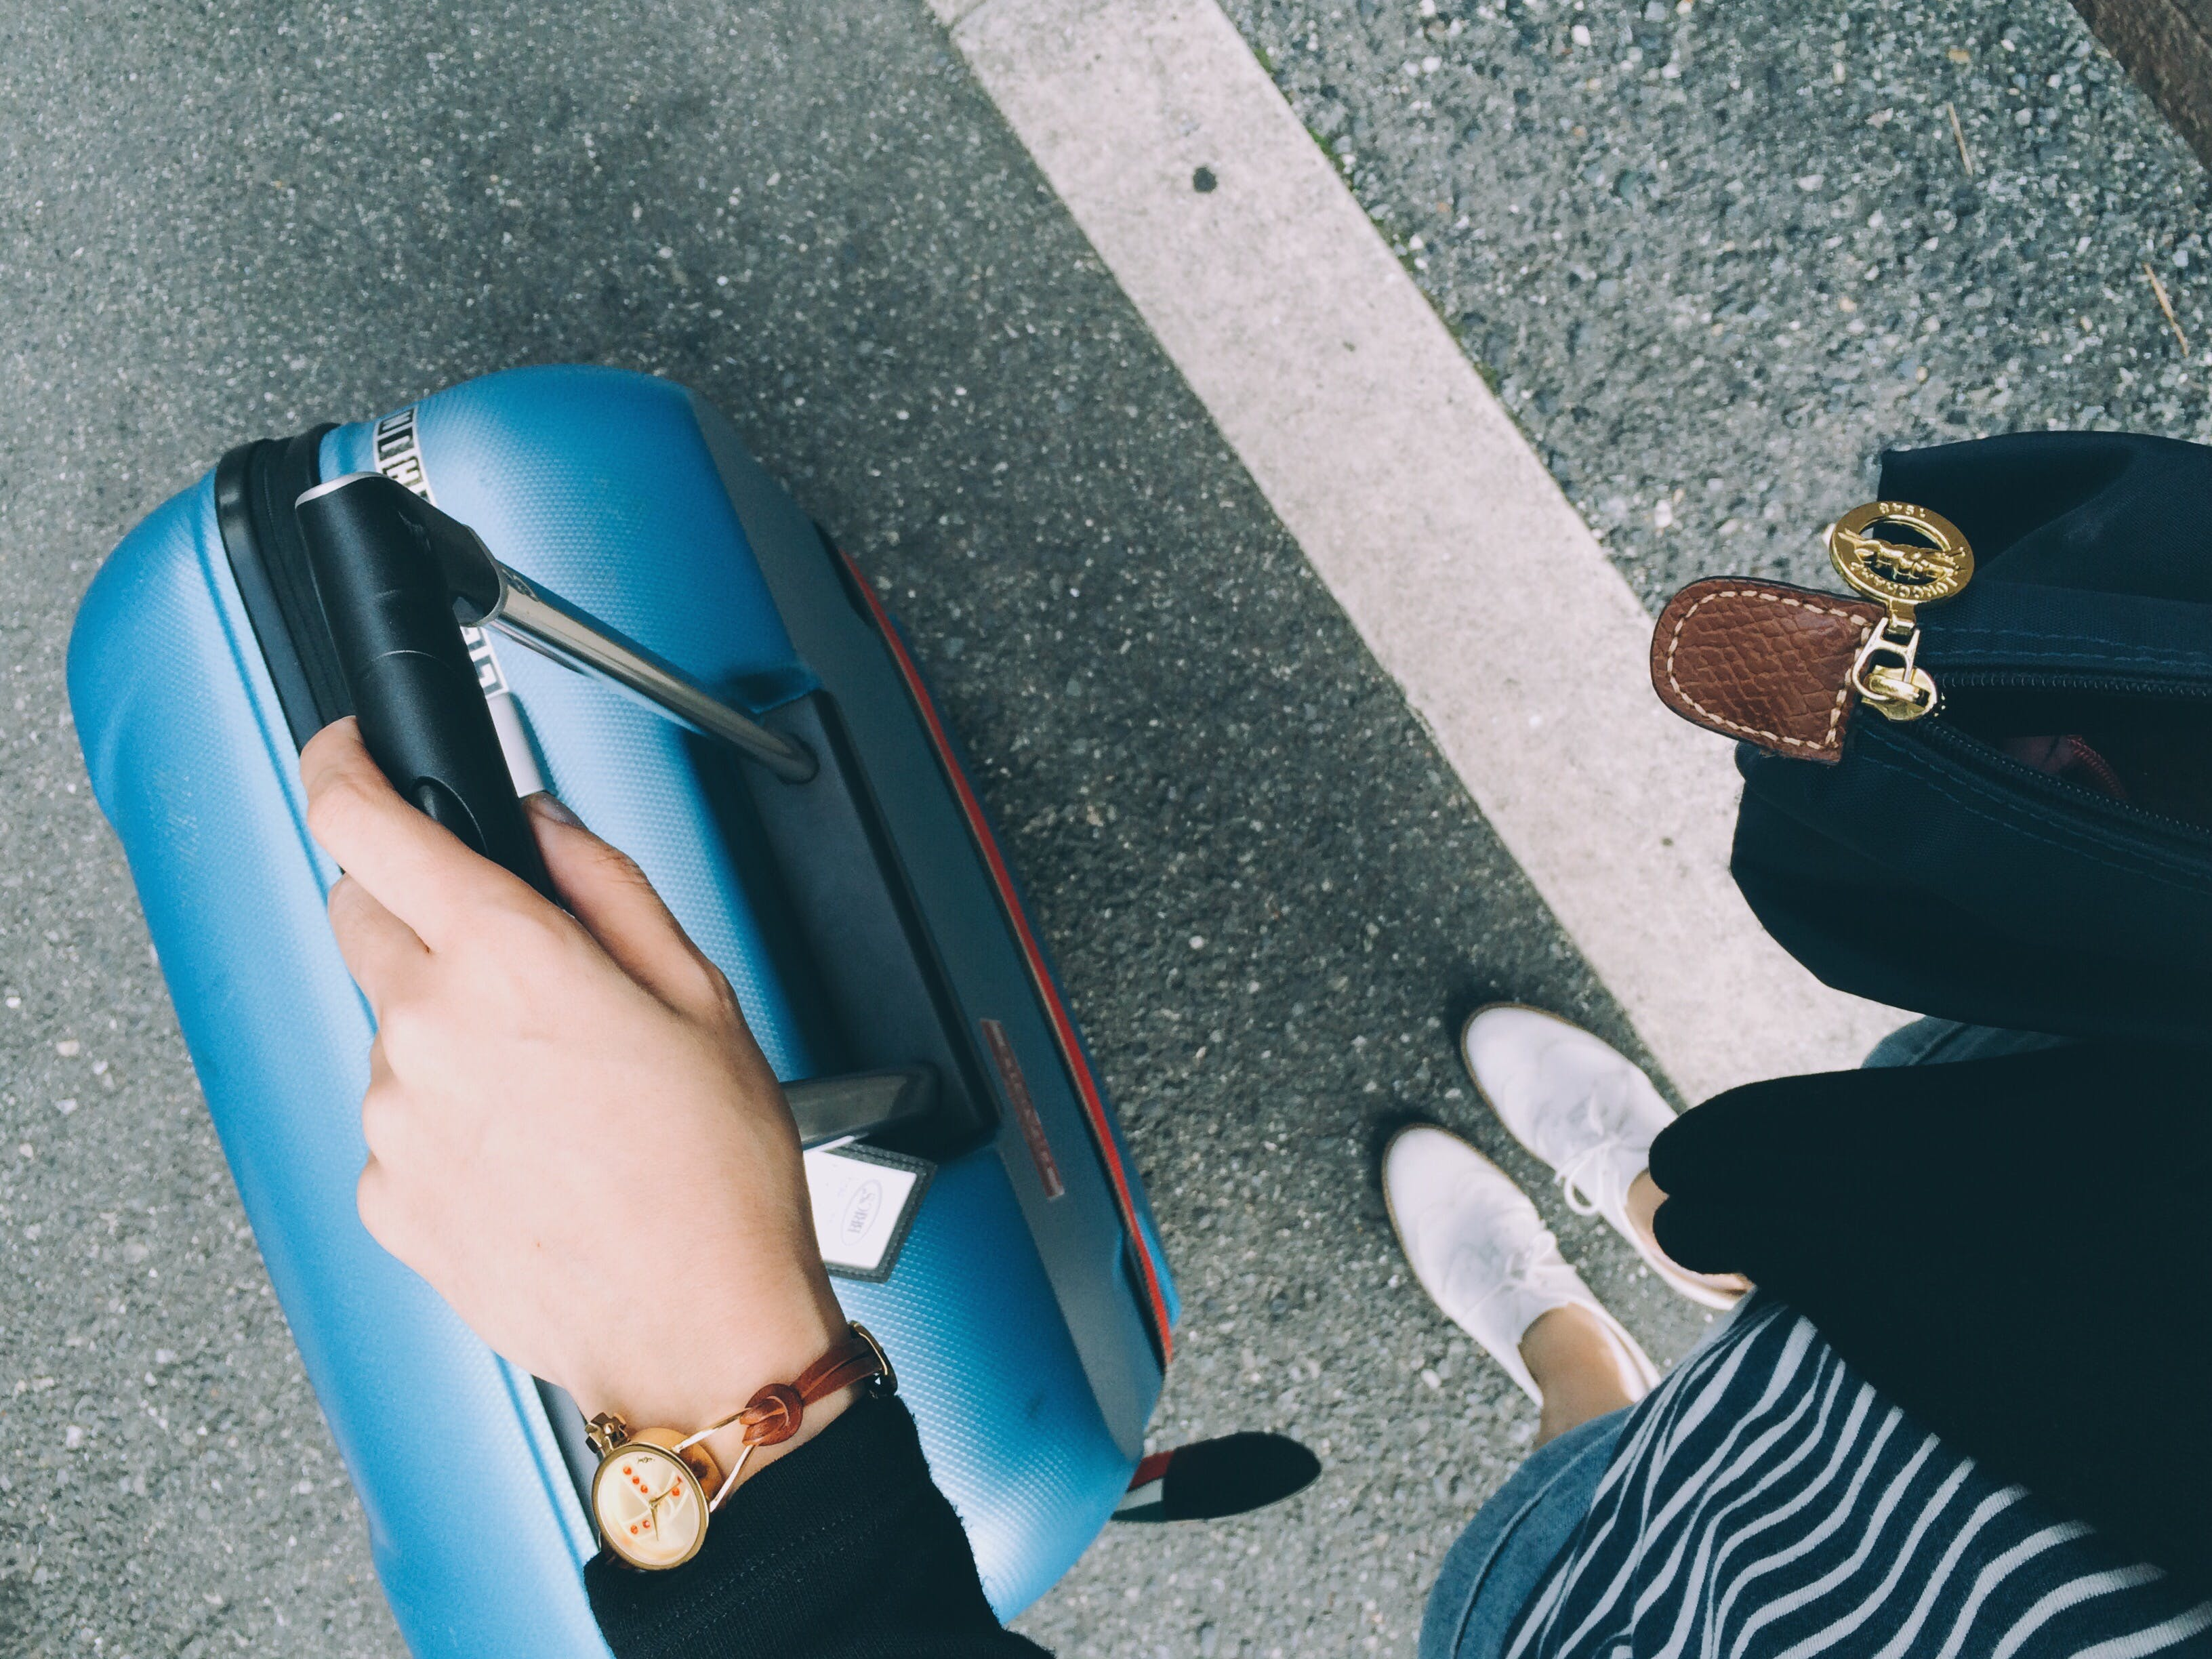 check your bags solo lady travel ideas